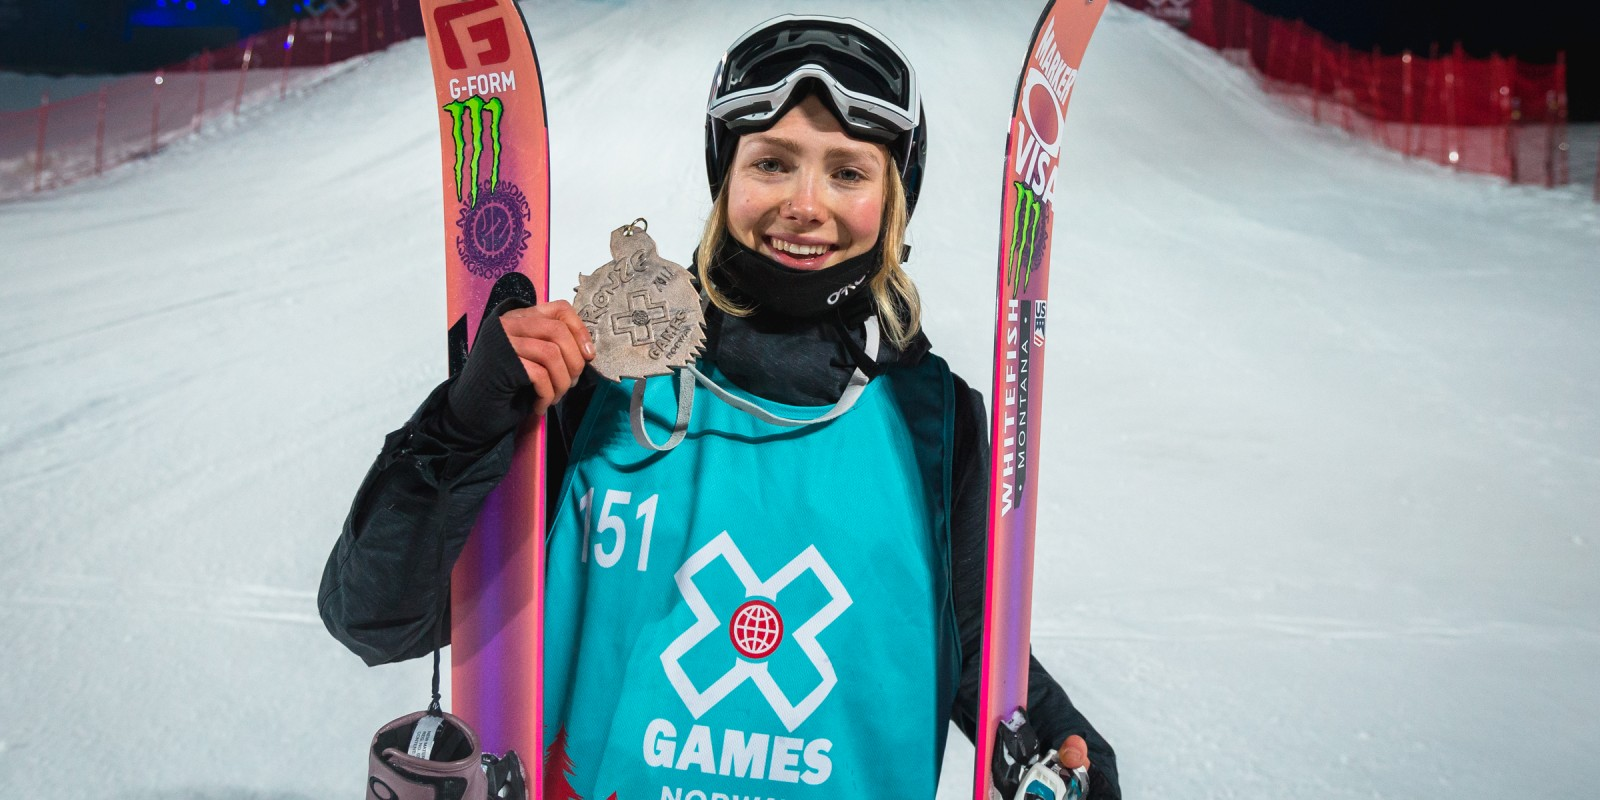 Action shots of Maggie Voisin at Norway's X Games